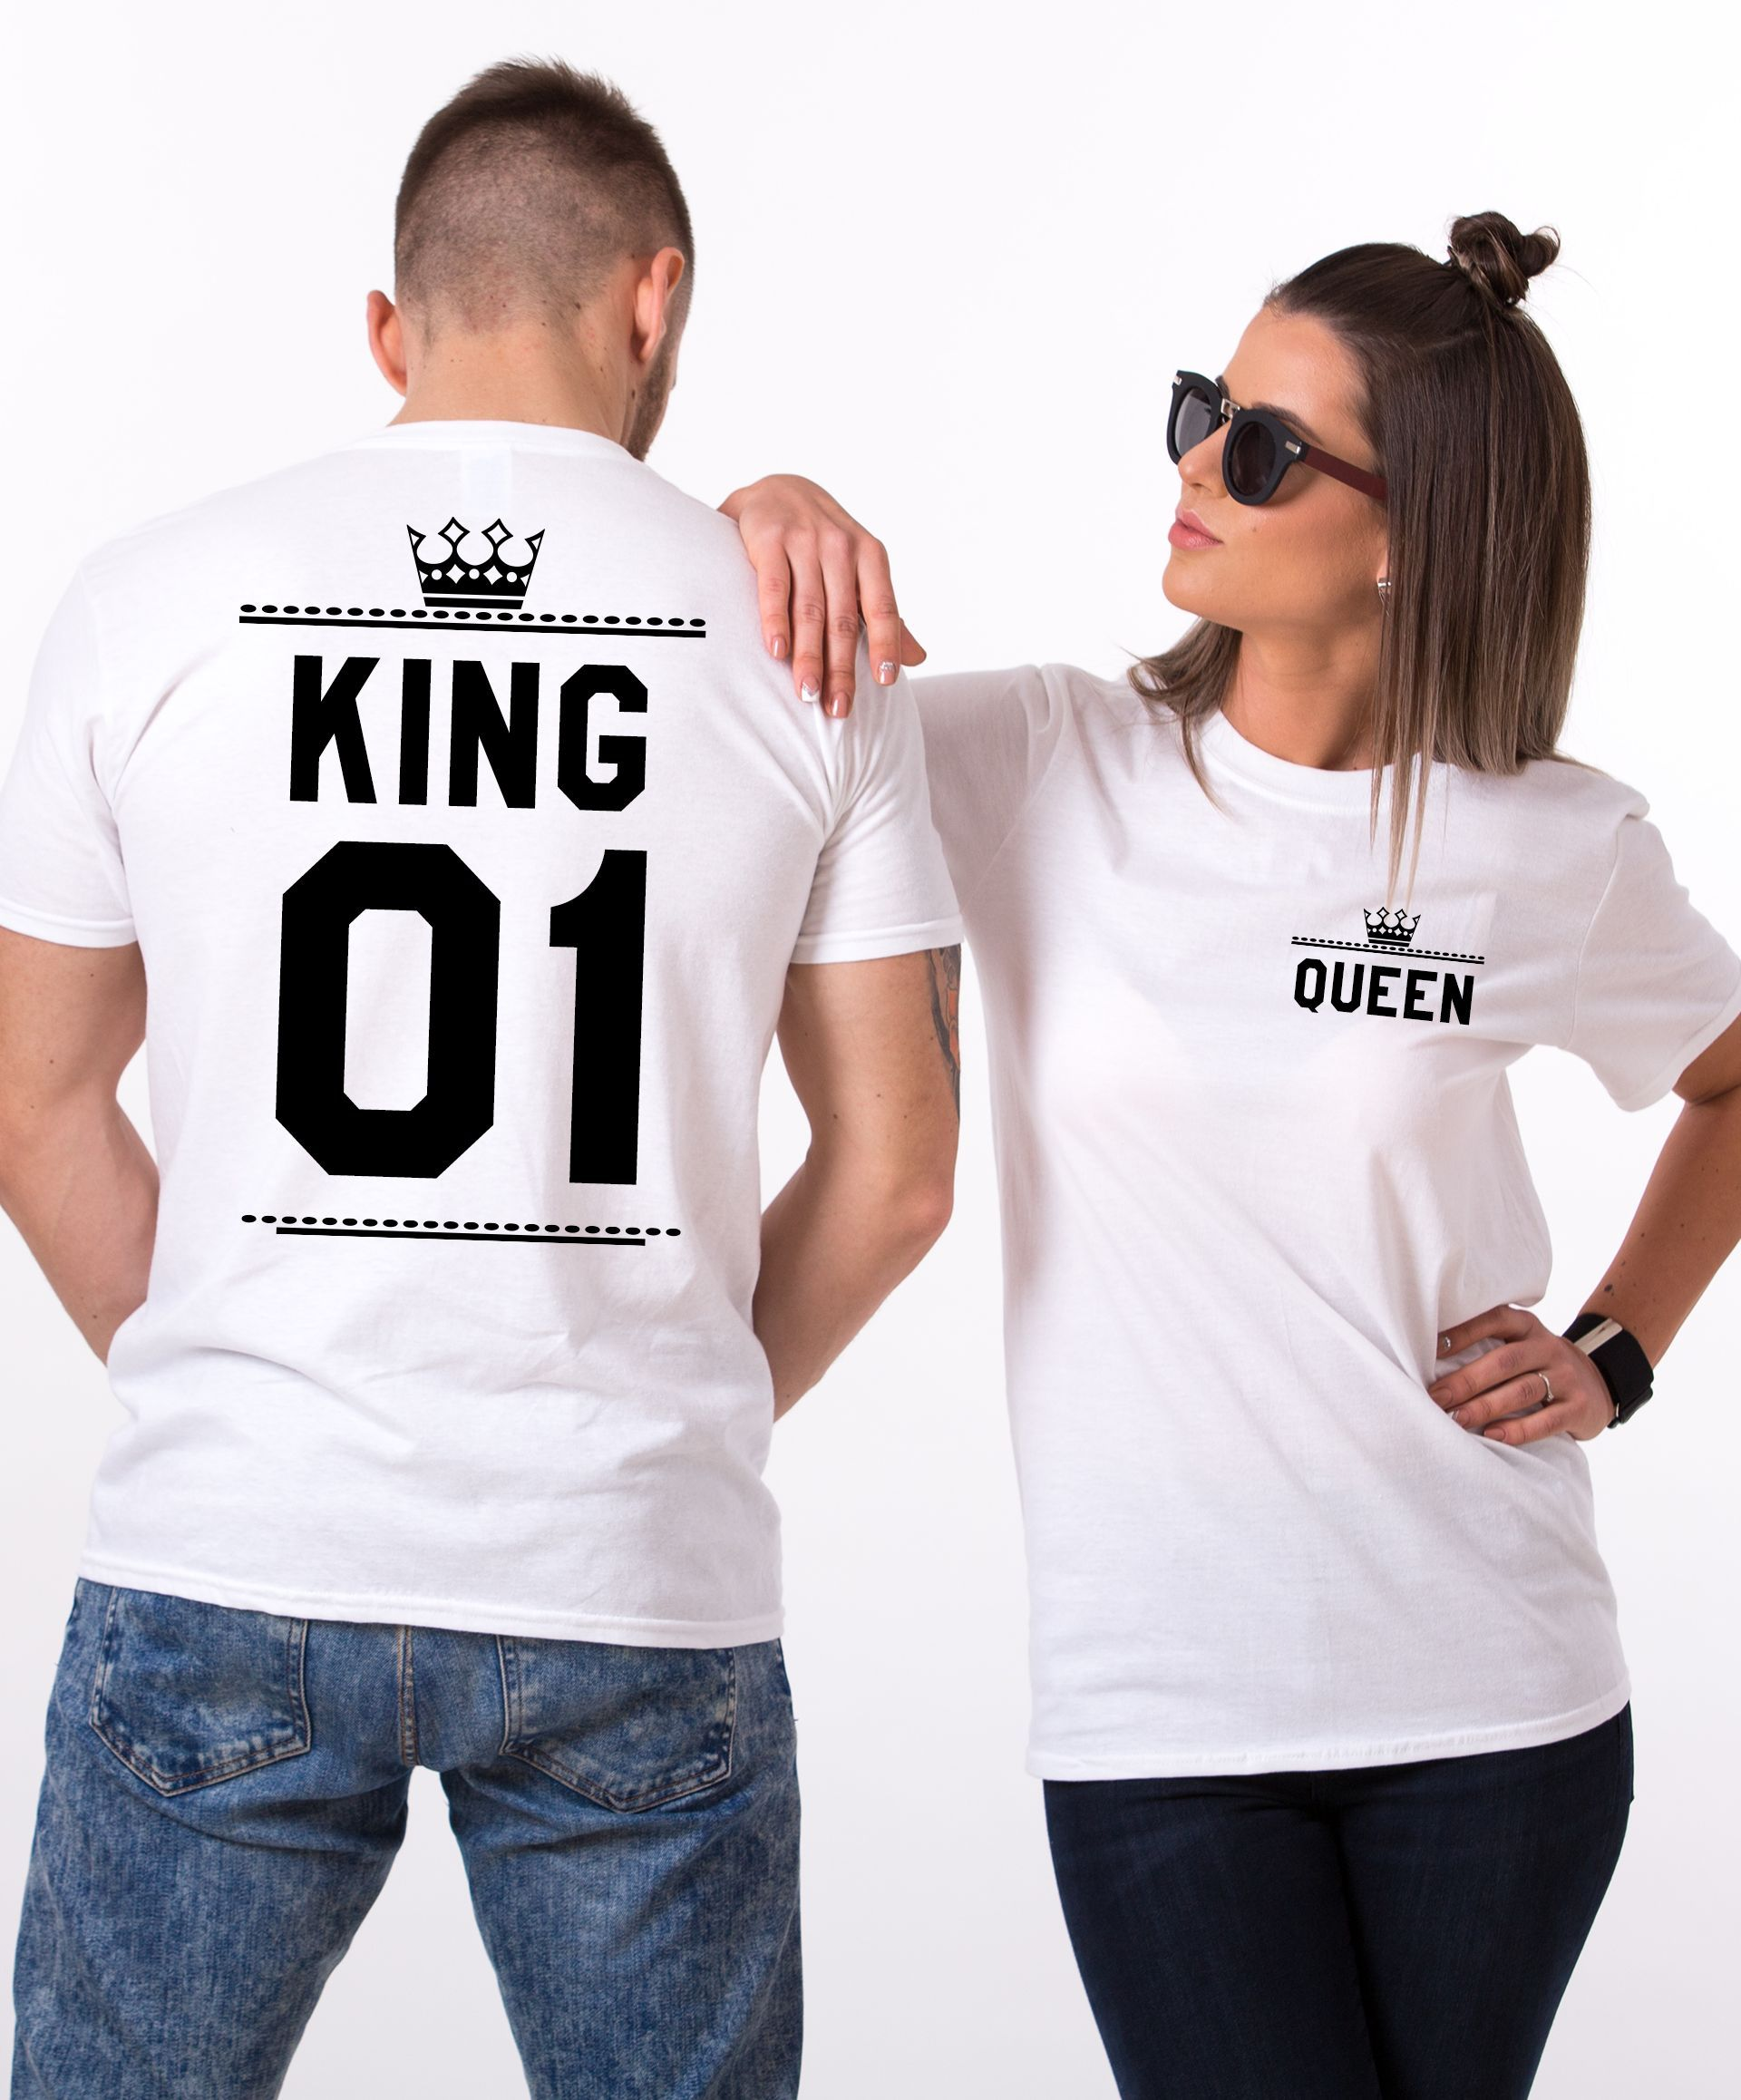 fe92781e7 King Queen 01 Crowns, Double Sided, Matching Couples Shirts. A perfect  match for royal couples! Get set of matching shirts now!